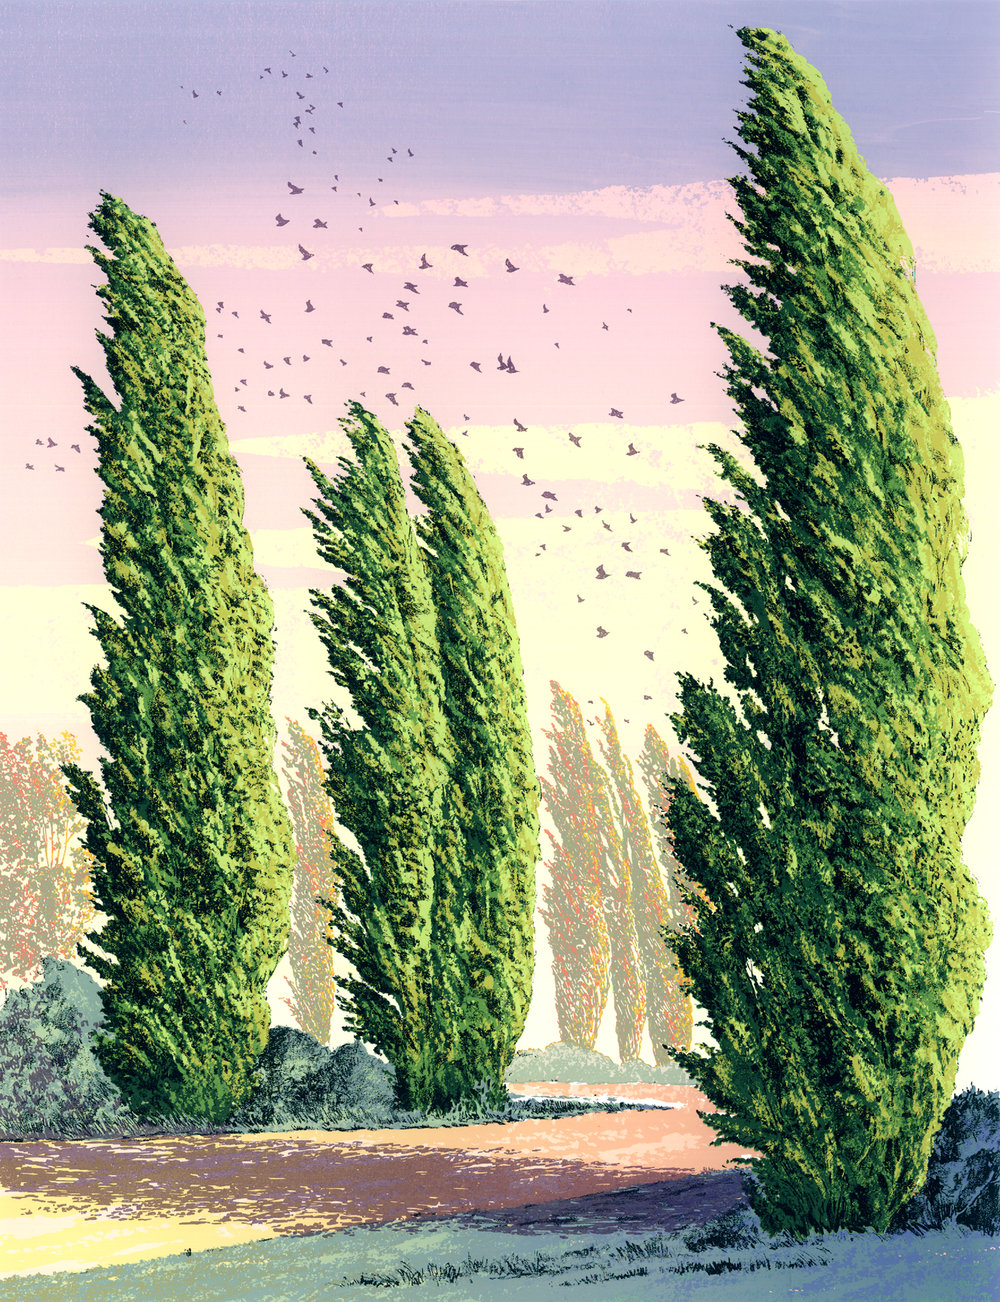 "199   Poplars 3   24"" x 18"" – 610 x 460mm 19 colors 25 edition / 20 available $450"